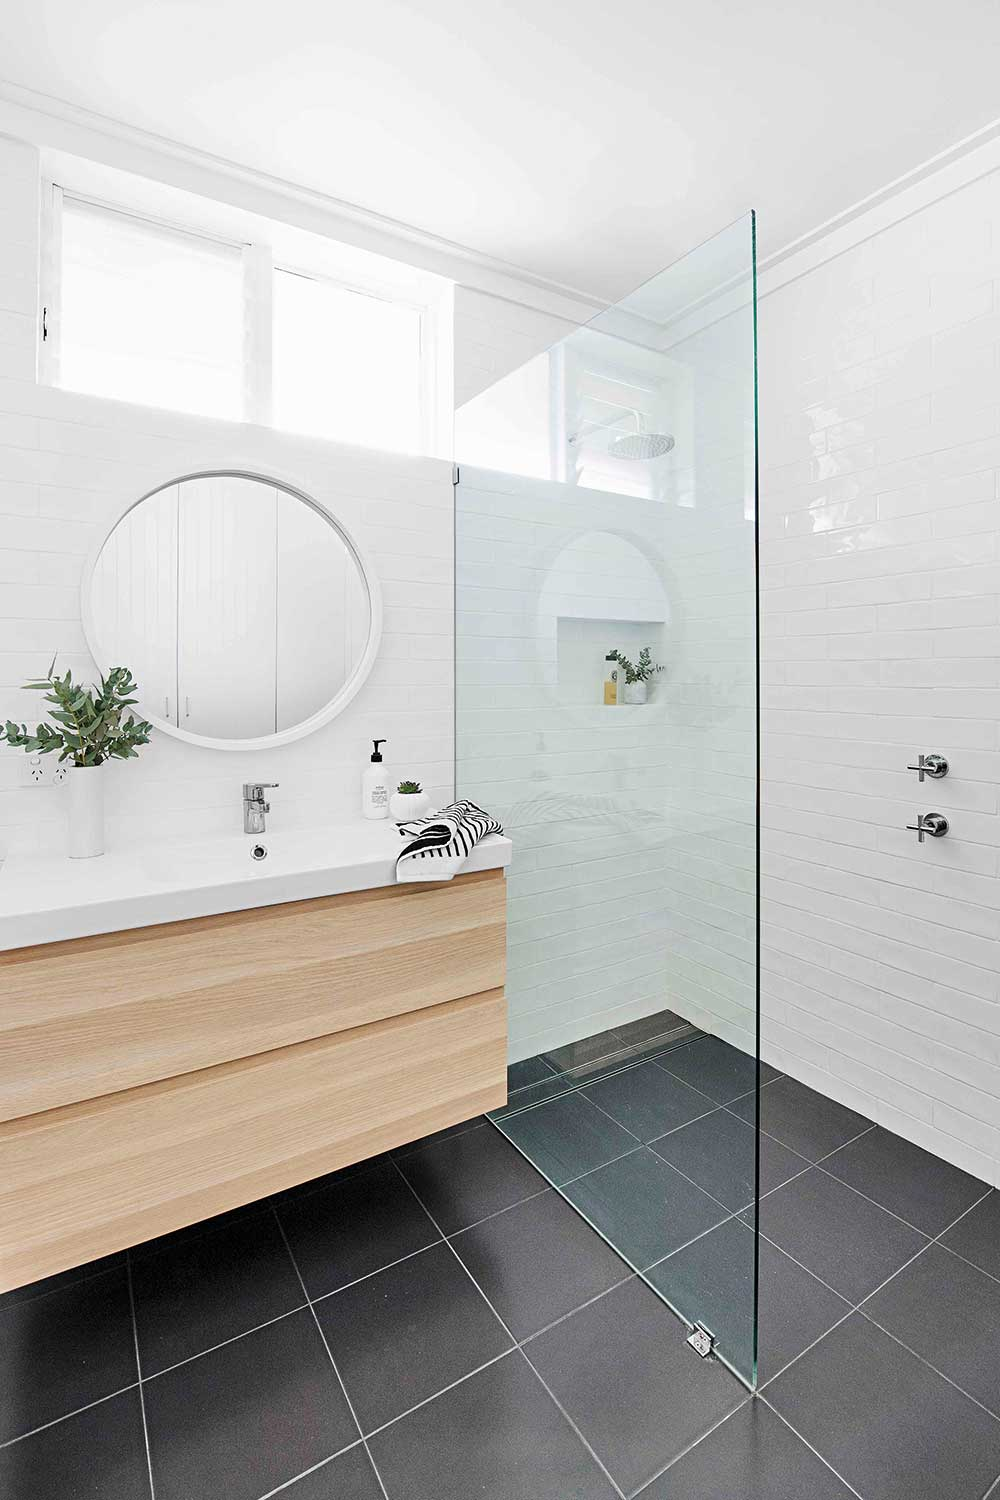 Before & After: Bathroom Makeover Renovated From Disaster